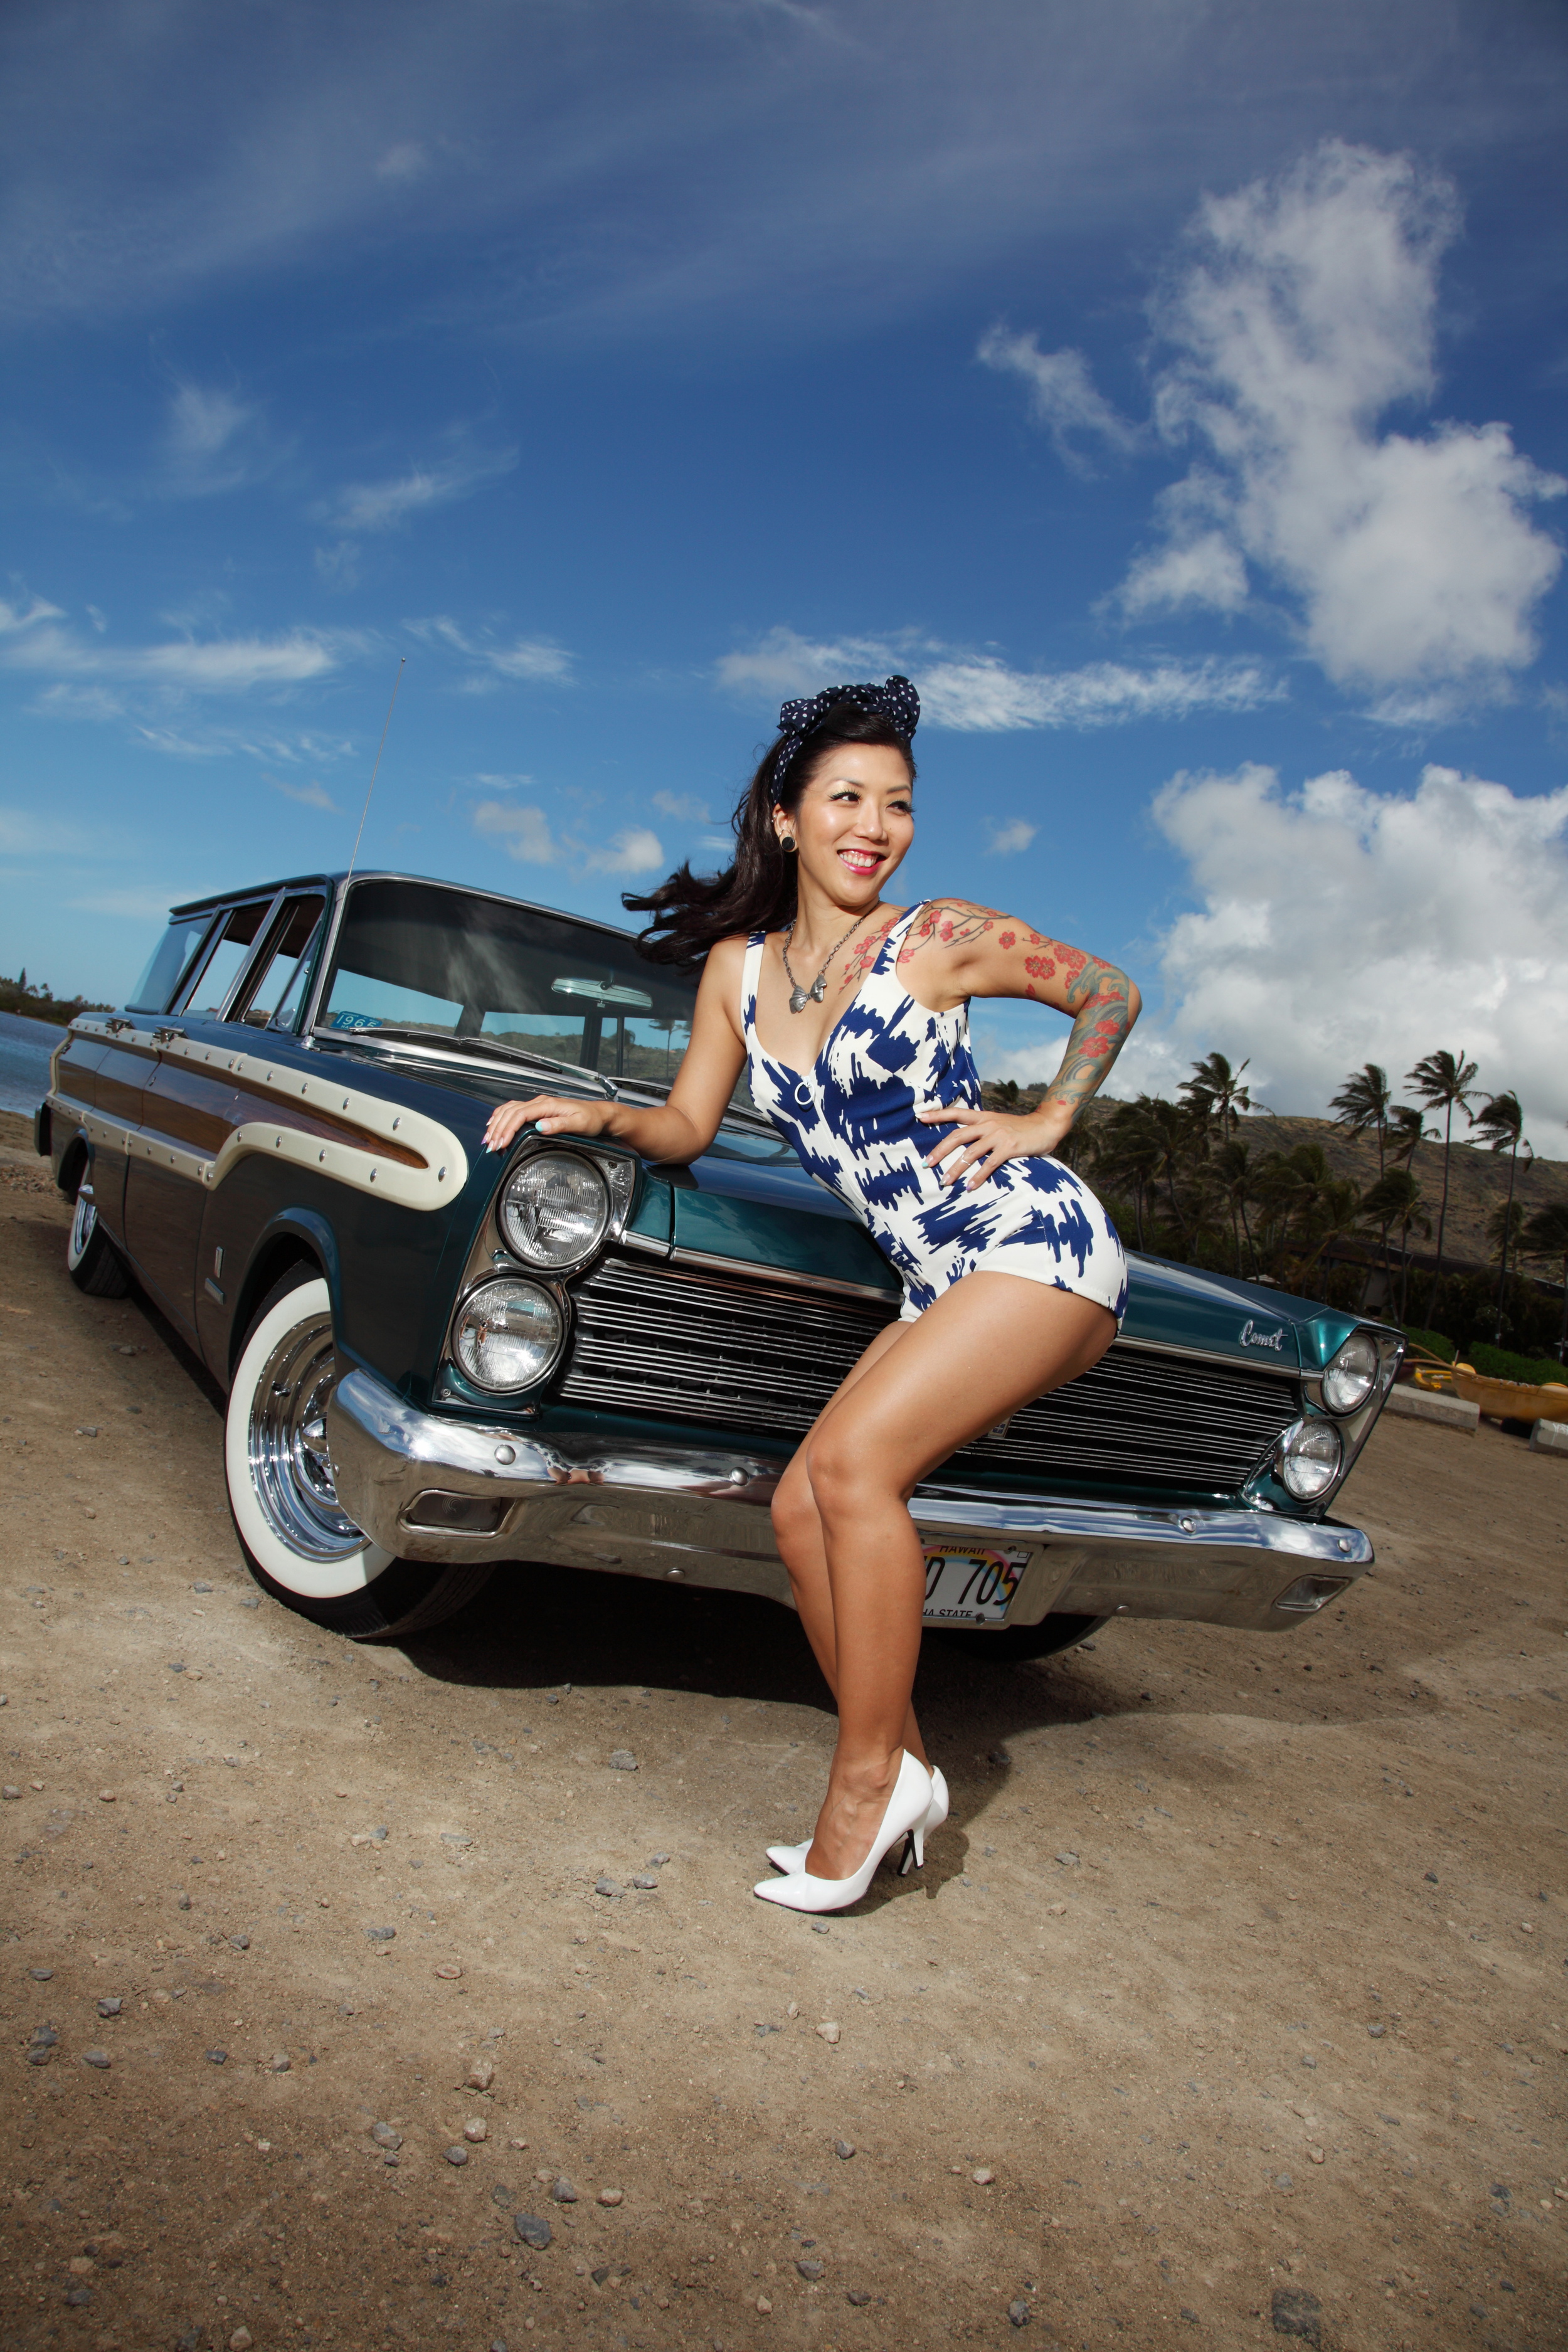 Photo by Eugene Hopkins for Island Greaser